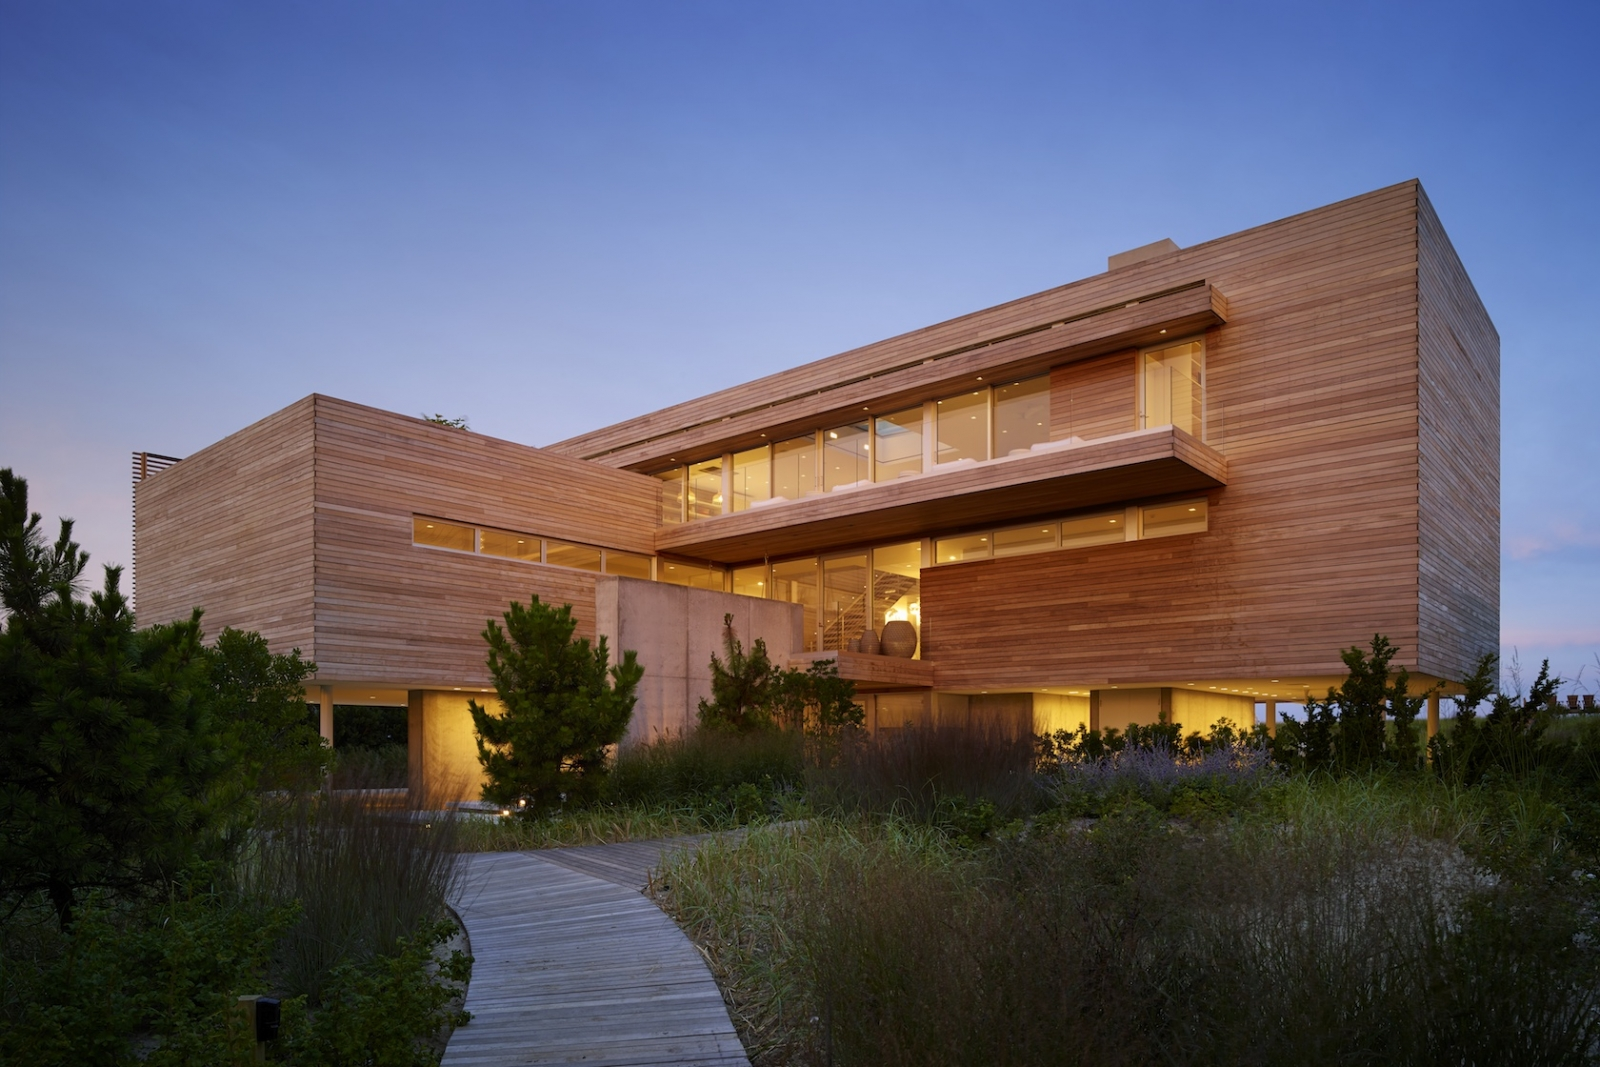 Ocean Deck House in Bridgehampton, New York by Stelle Lomont Rouhani Architects